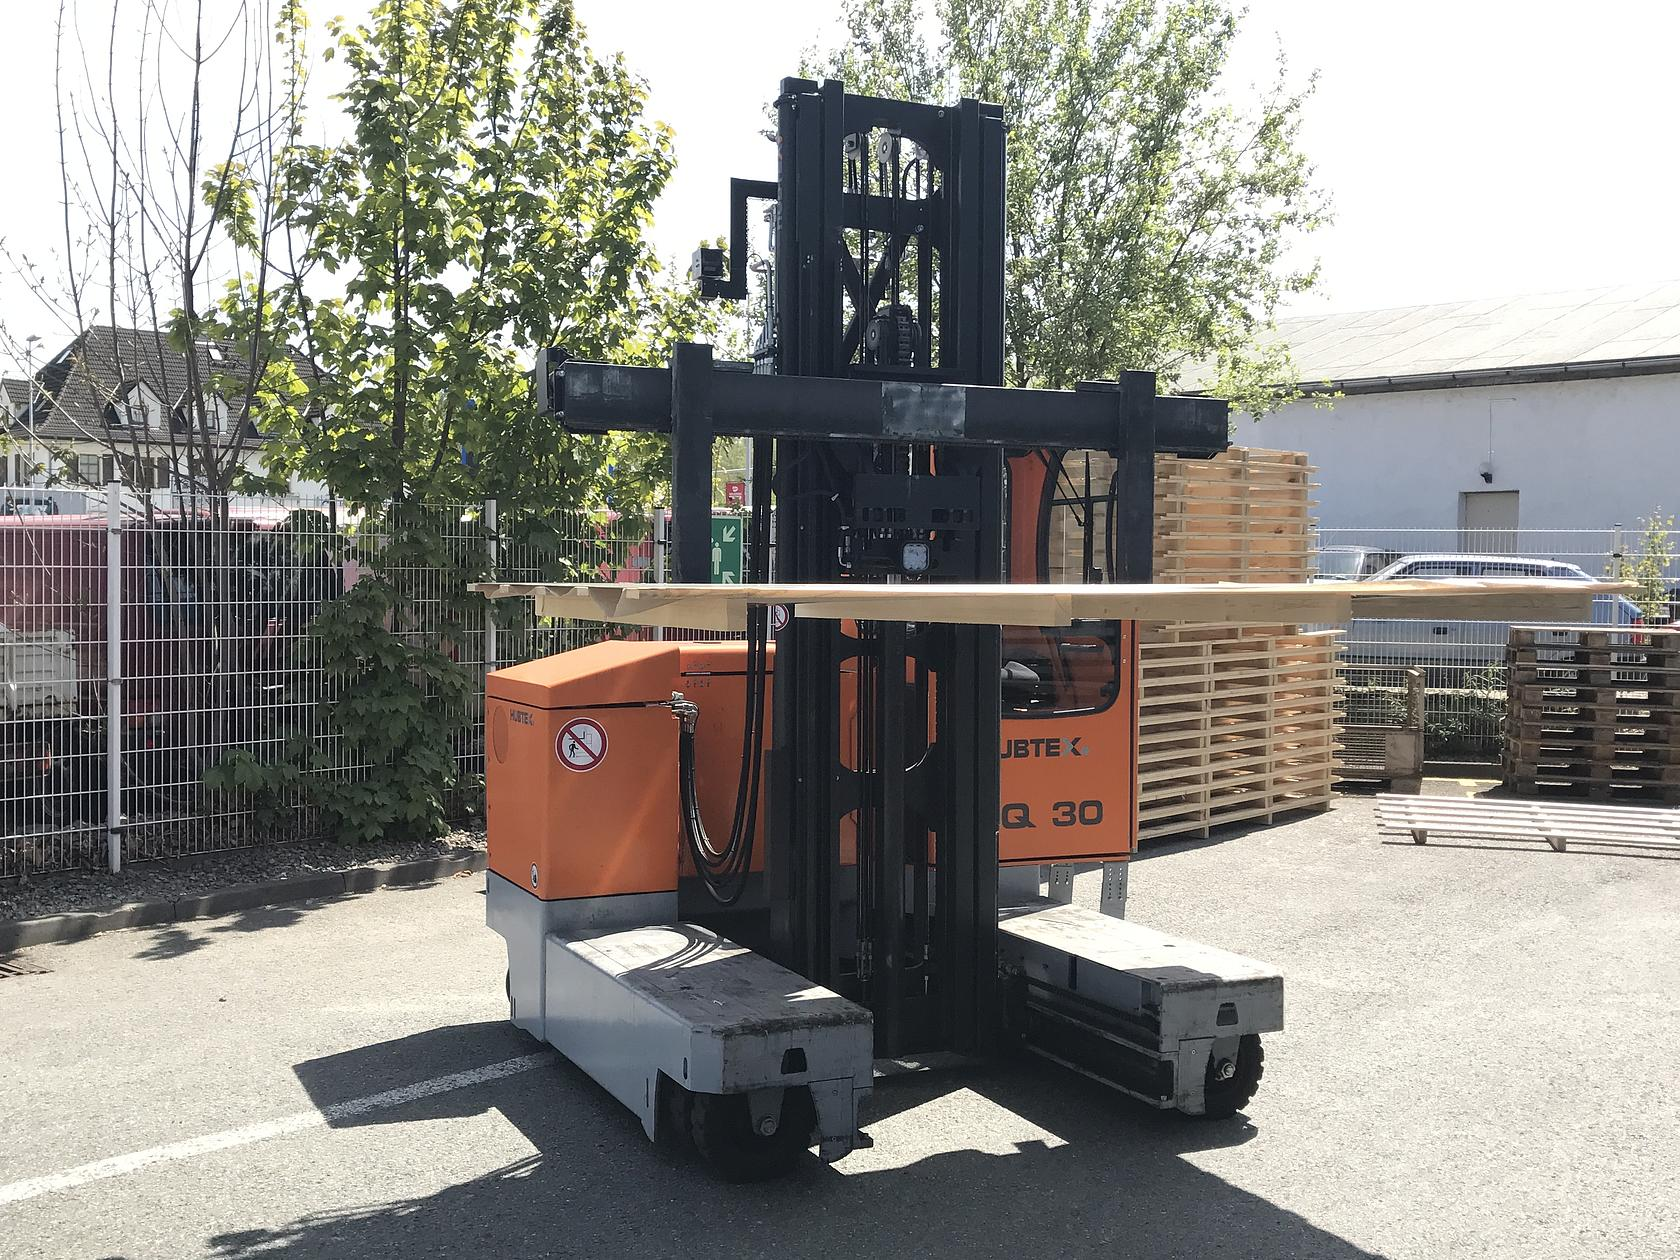 HUBTEX side loader MQ 30 series 2120